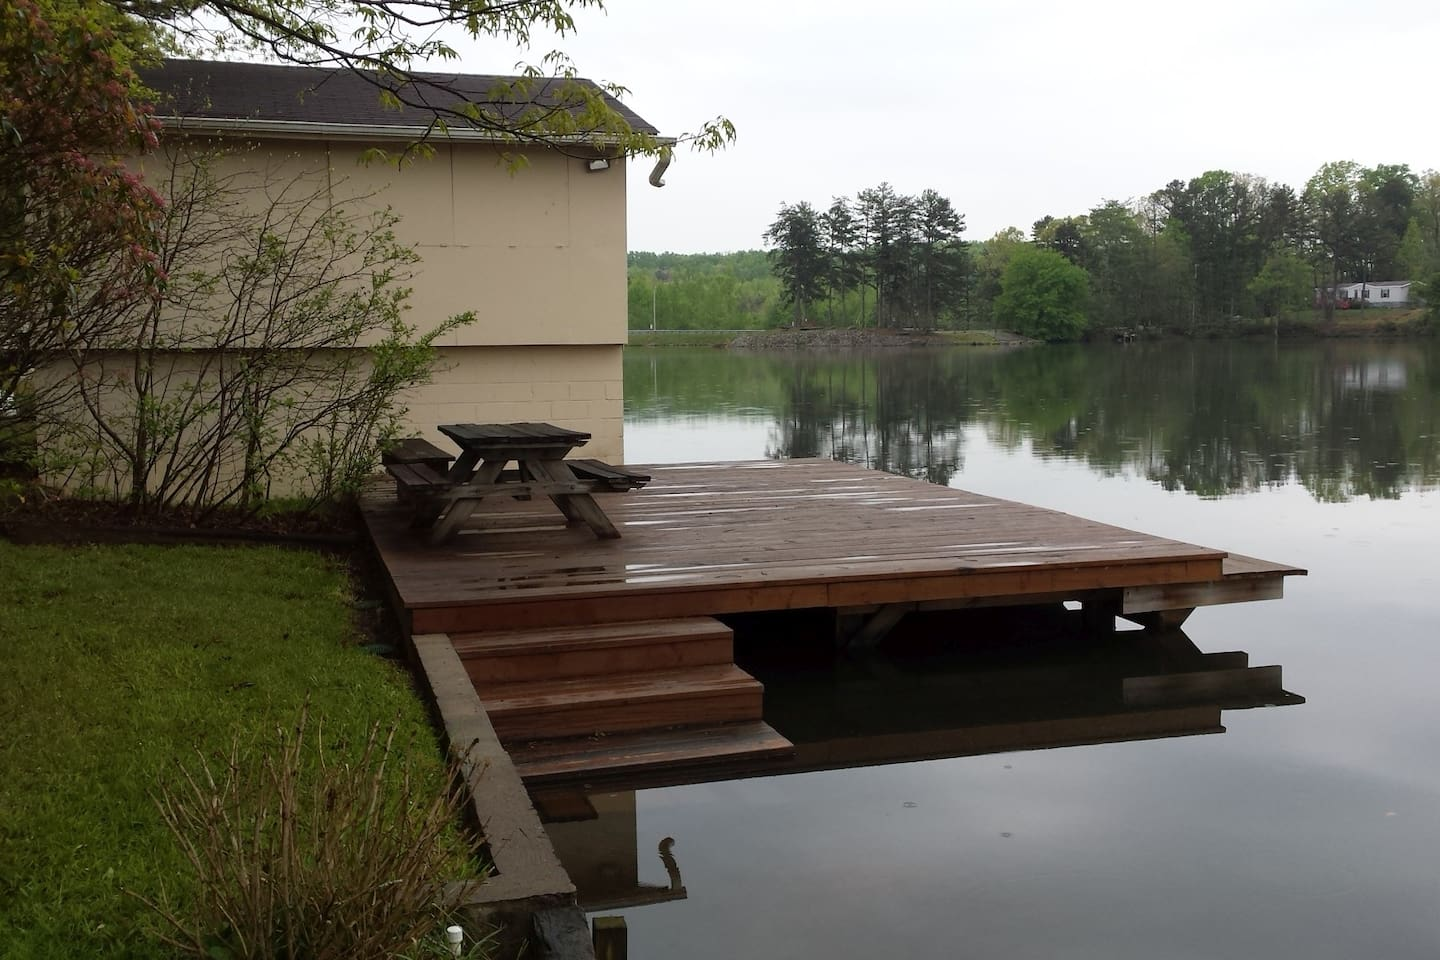 Lake cabin in sc mountains cabins for rent in mountain rest south large fixed dock not floating with wide easy entry into the lake disclaimer publicscrutiny Images